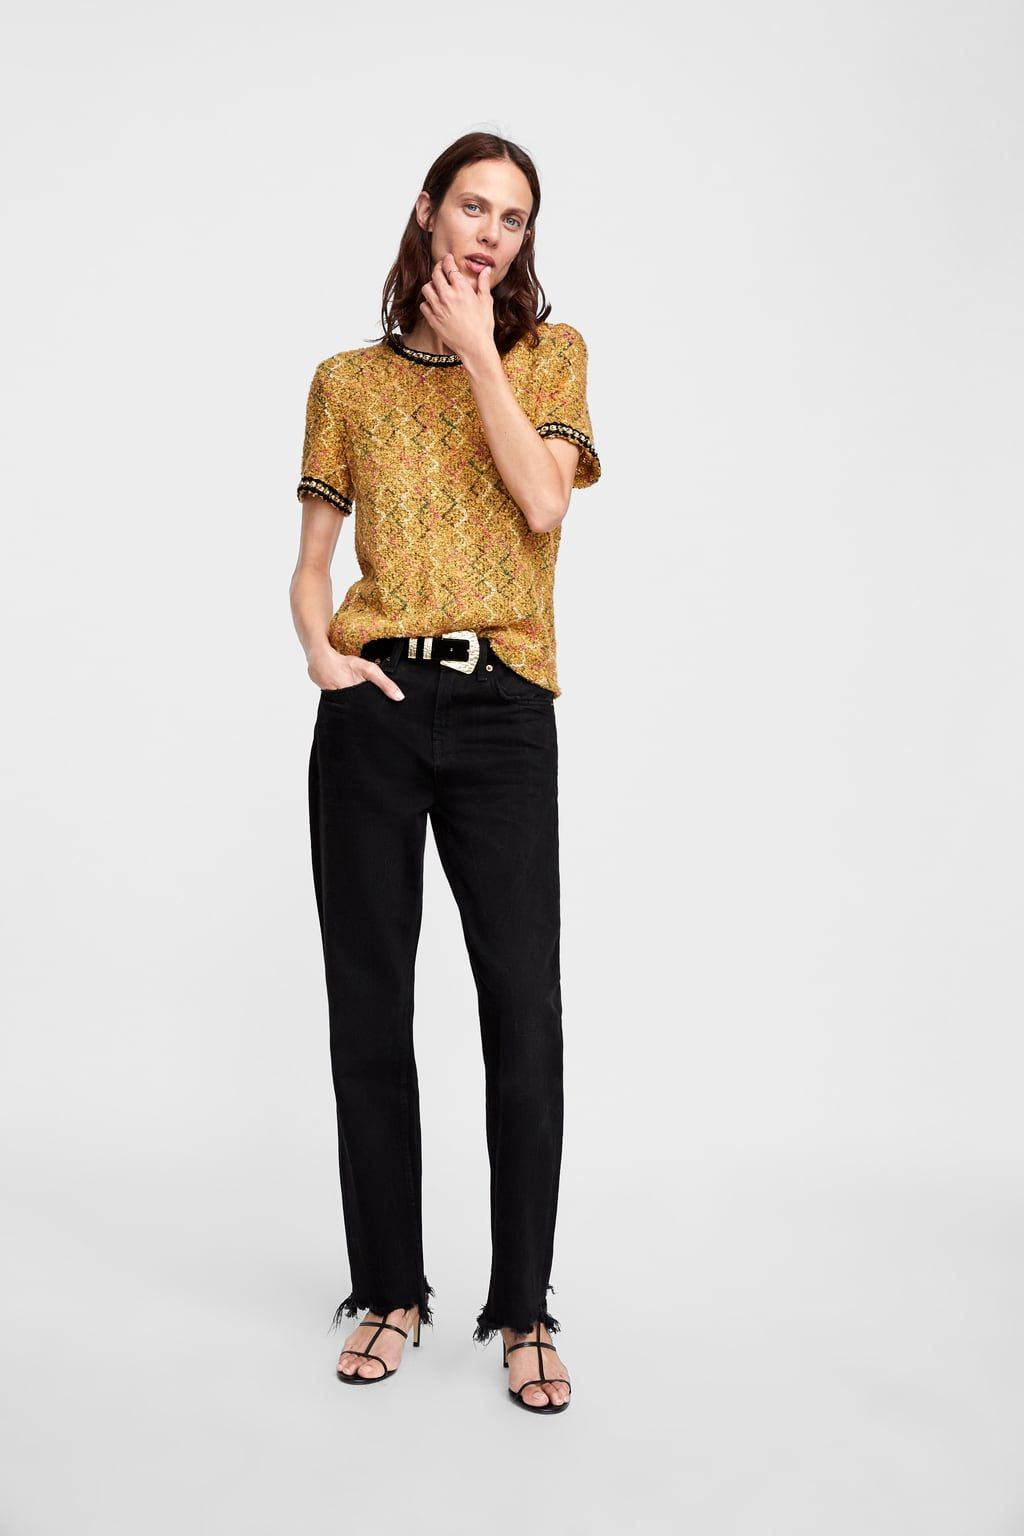 52472d34dd9 Image 1 of TWEED TOP WITH FAUX PEARLS from Zara | xmas list | Tops ...